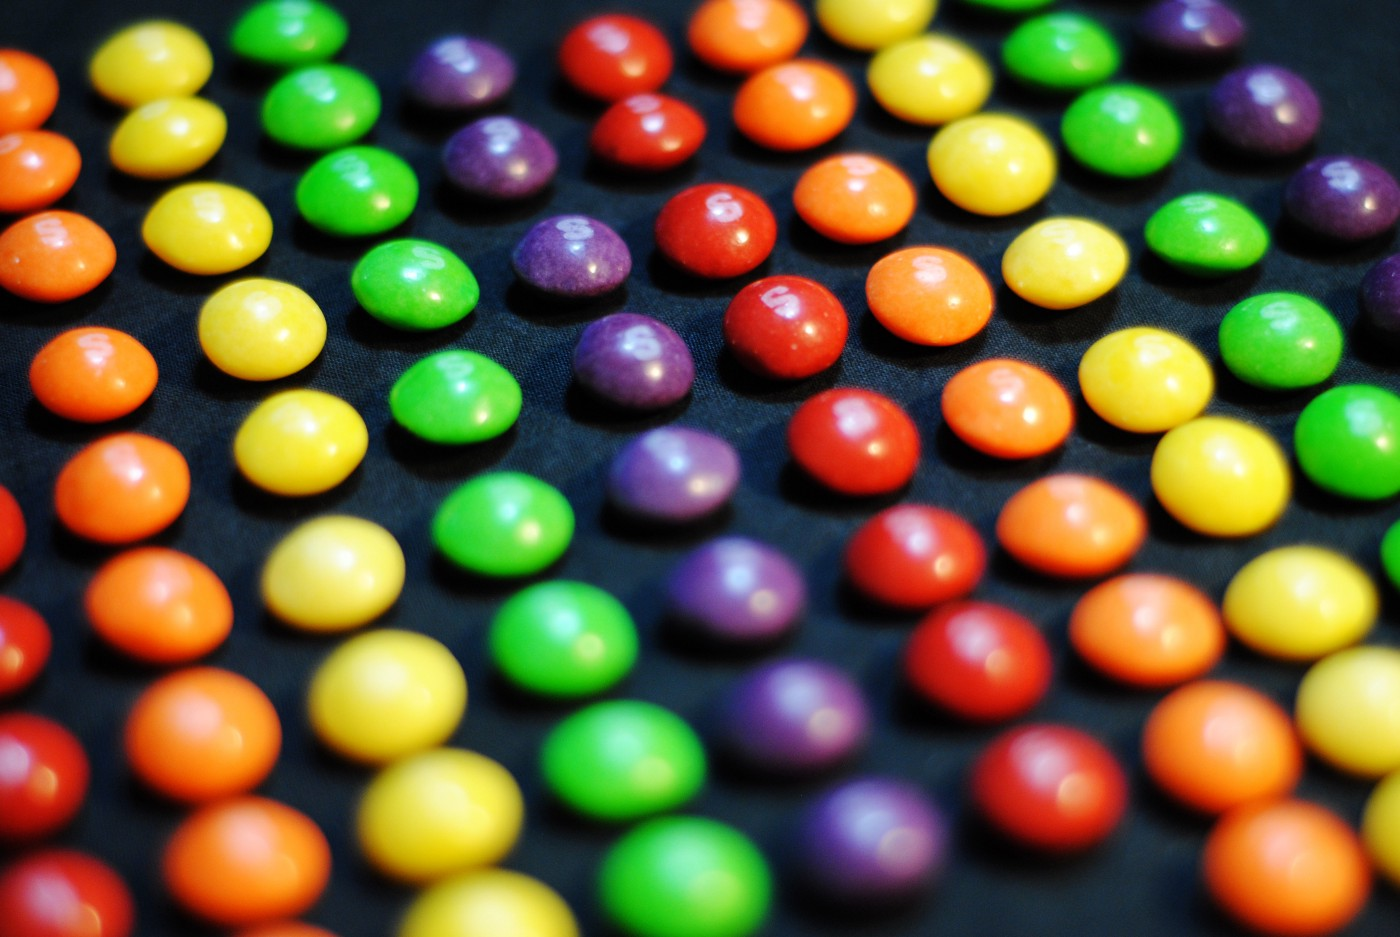 Neatly arranged lines of red, orange, yellow, green, and purple Skittles.